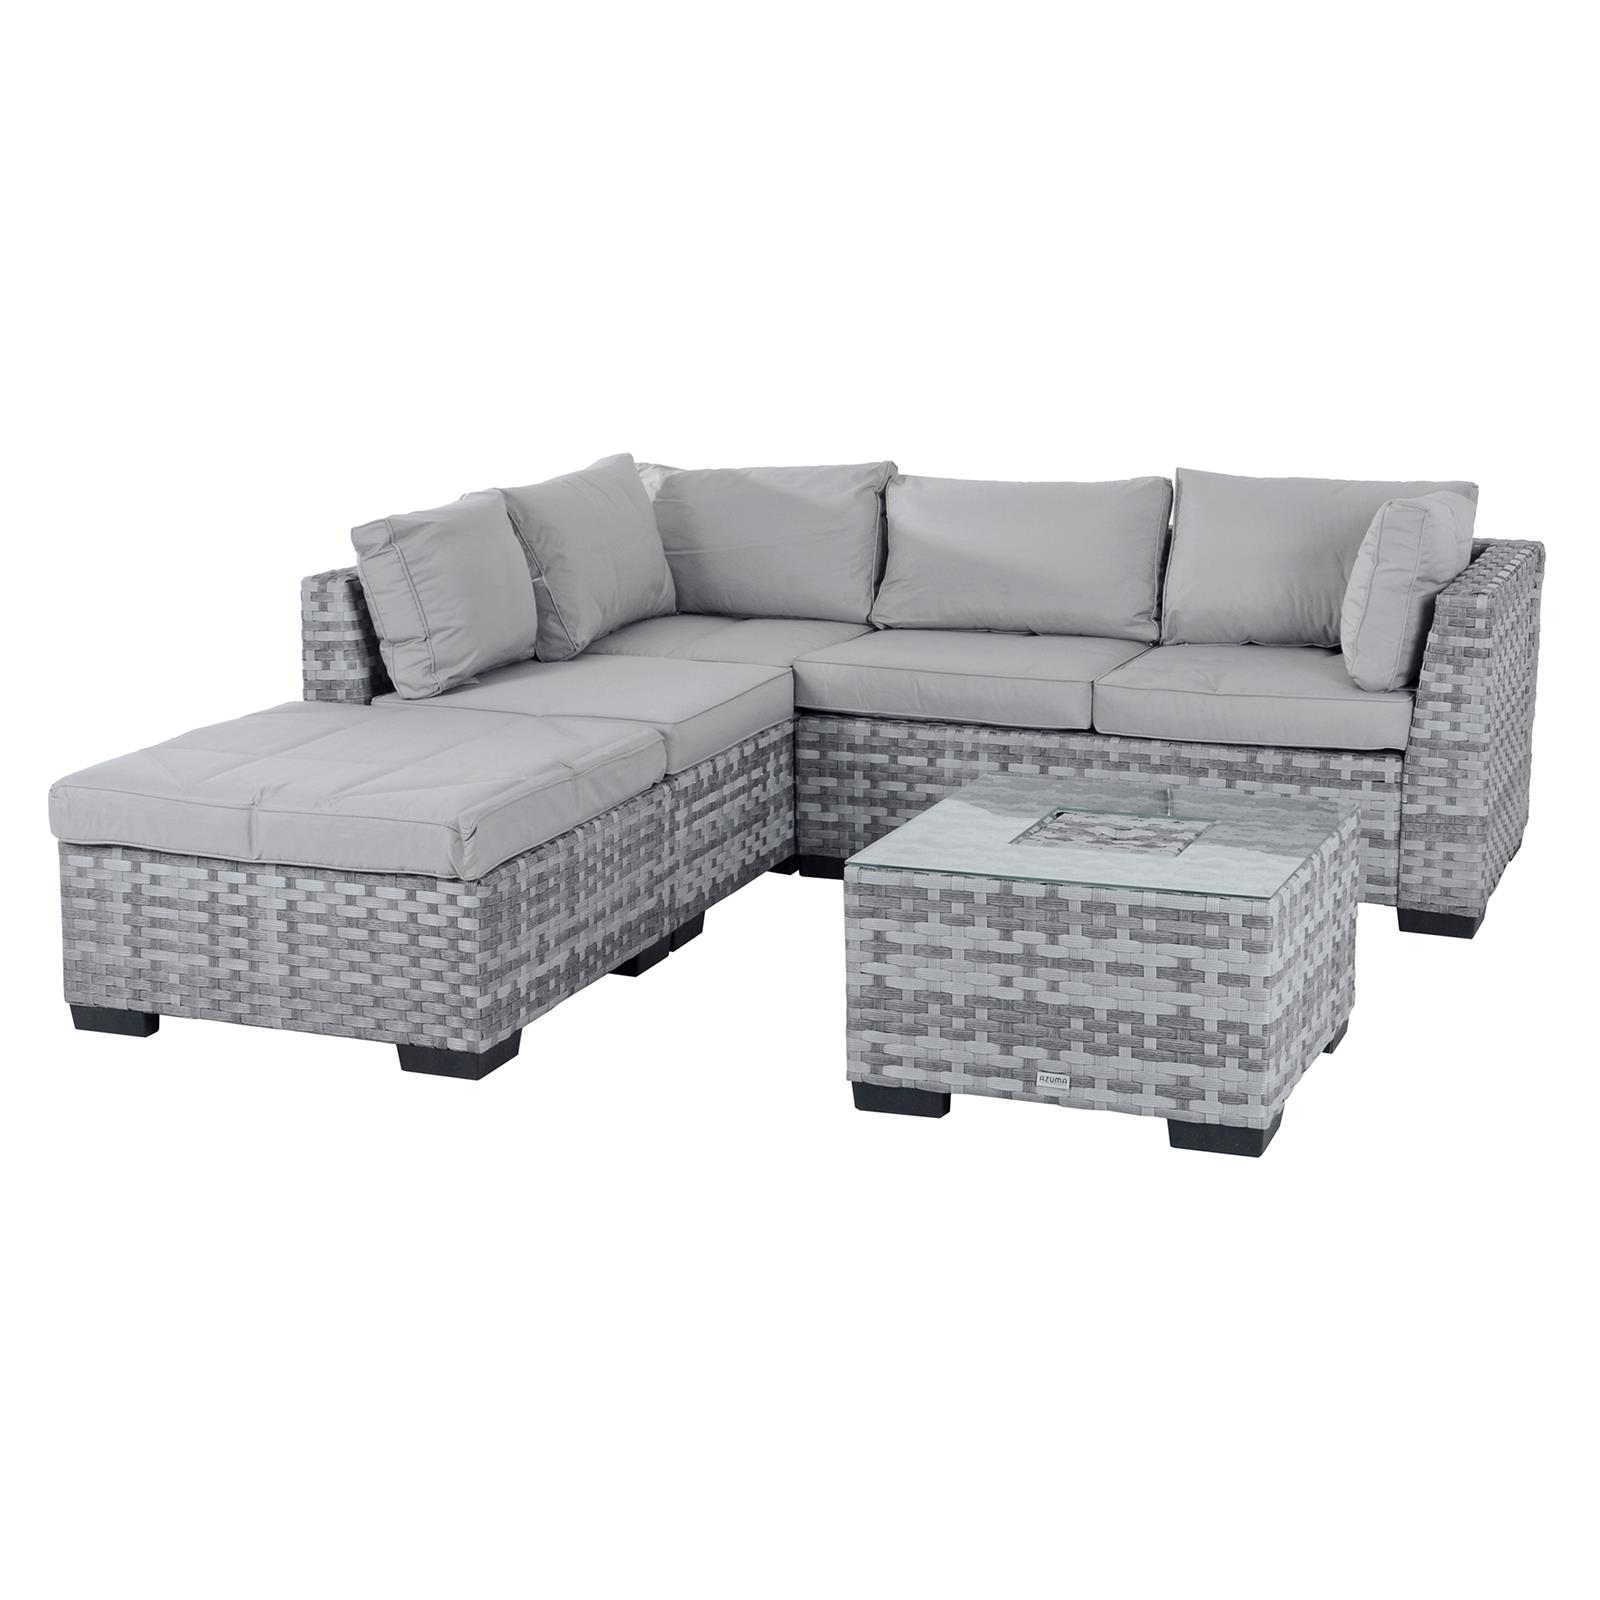 Terrific Details About Garden Sofa Set Azuma Cannes Aluminium Rattan Corner Furniture Set Ice Table Theyellowbook Wood Chair Design Ideas Theyellowbookinfo